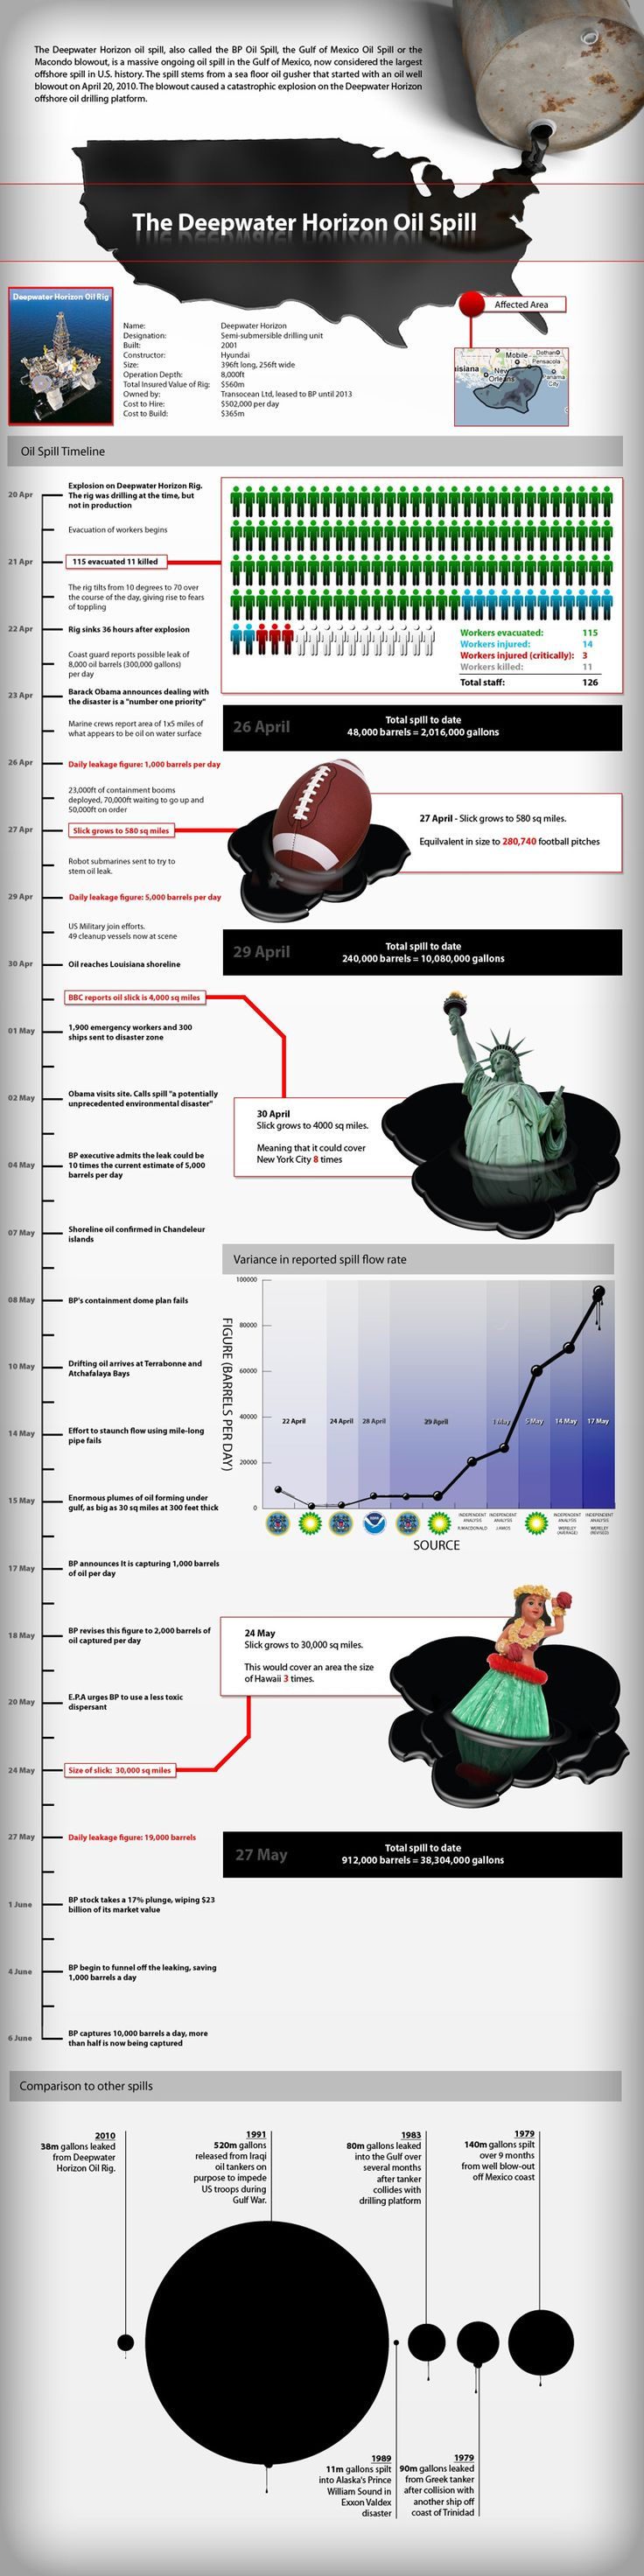 This infographic explains what the deep water horizon oil spill is, also known as the BP oil spill. It provides data about this oil spill, how much oi